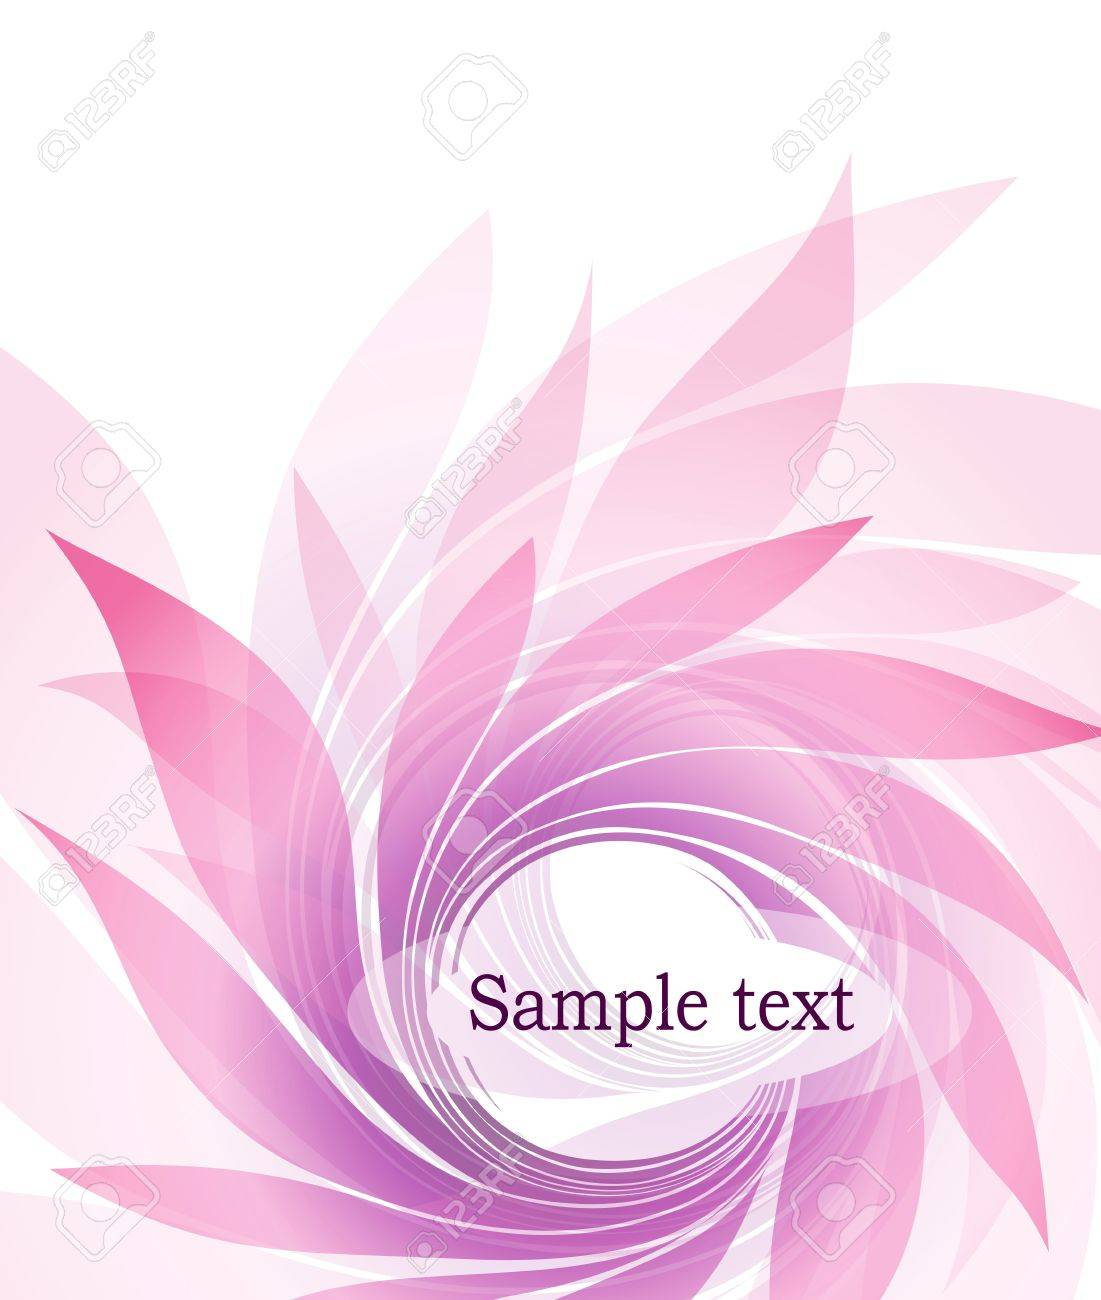 abstract background with petal - 11408274